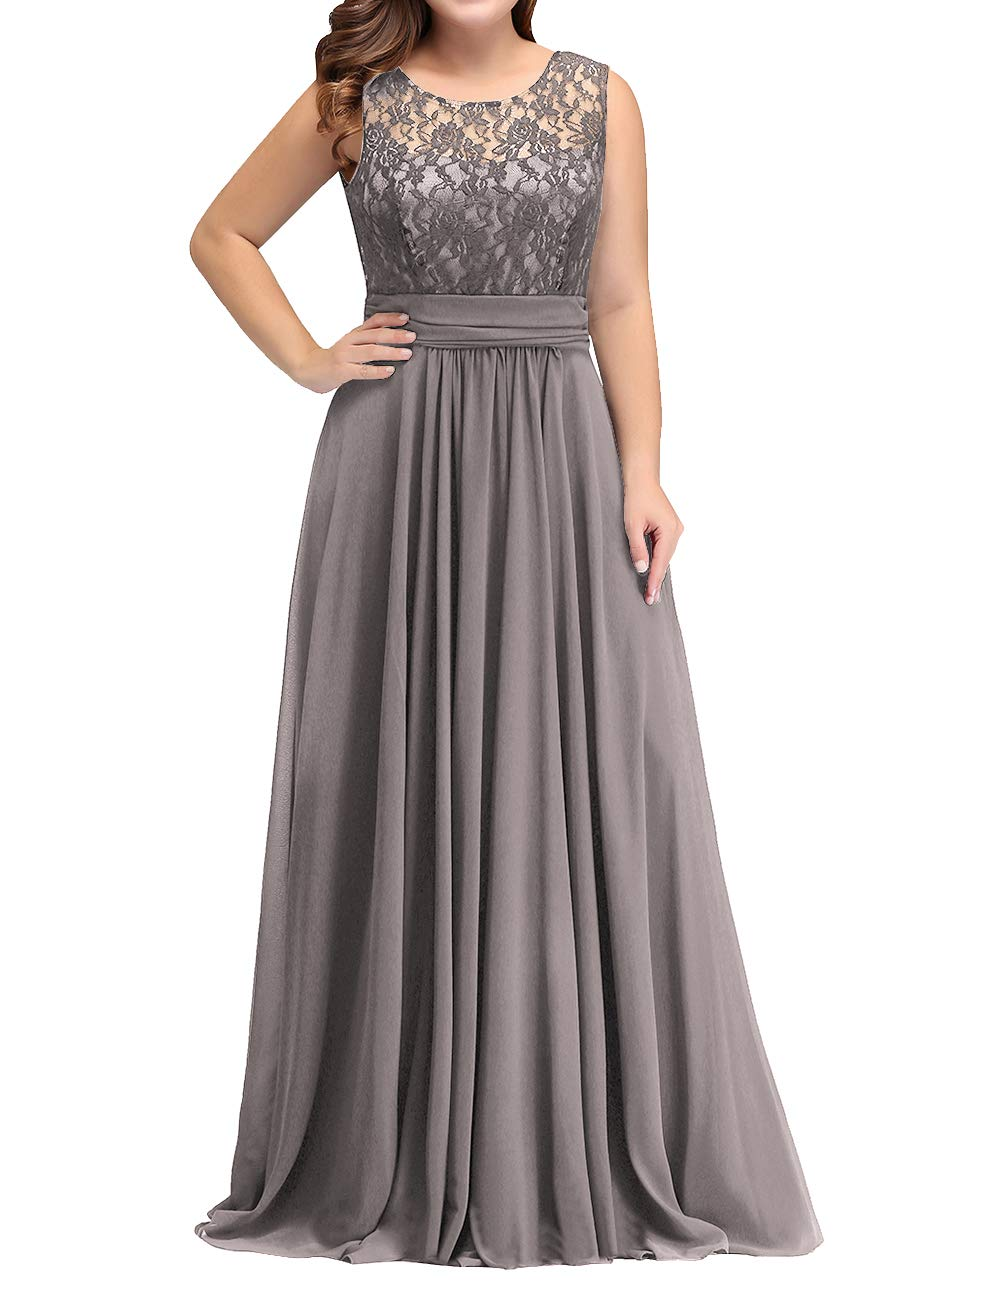 Mother Dress Lace Plus Size Mother of The Bride Skater Dress Bridal Wedding  Party Chiffon Warm Grey